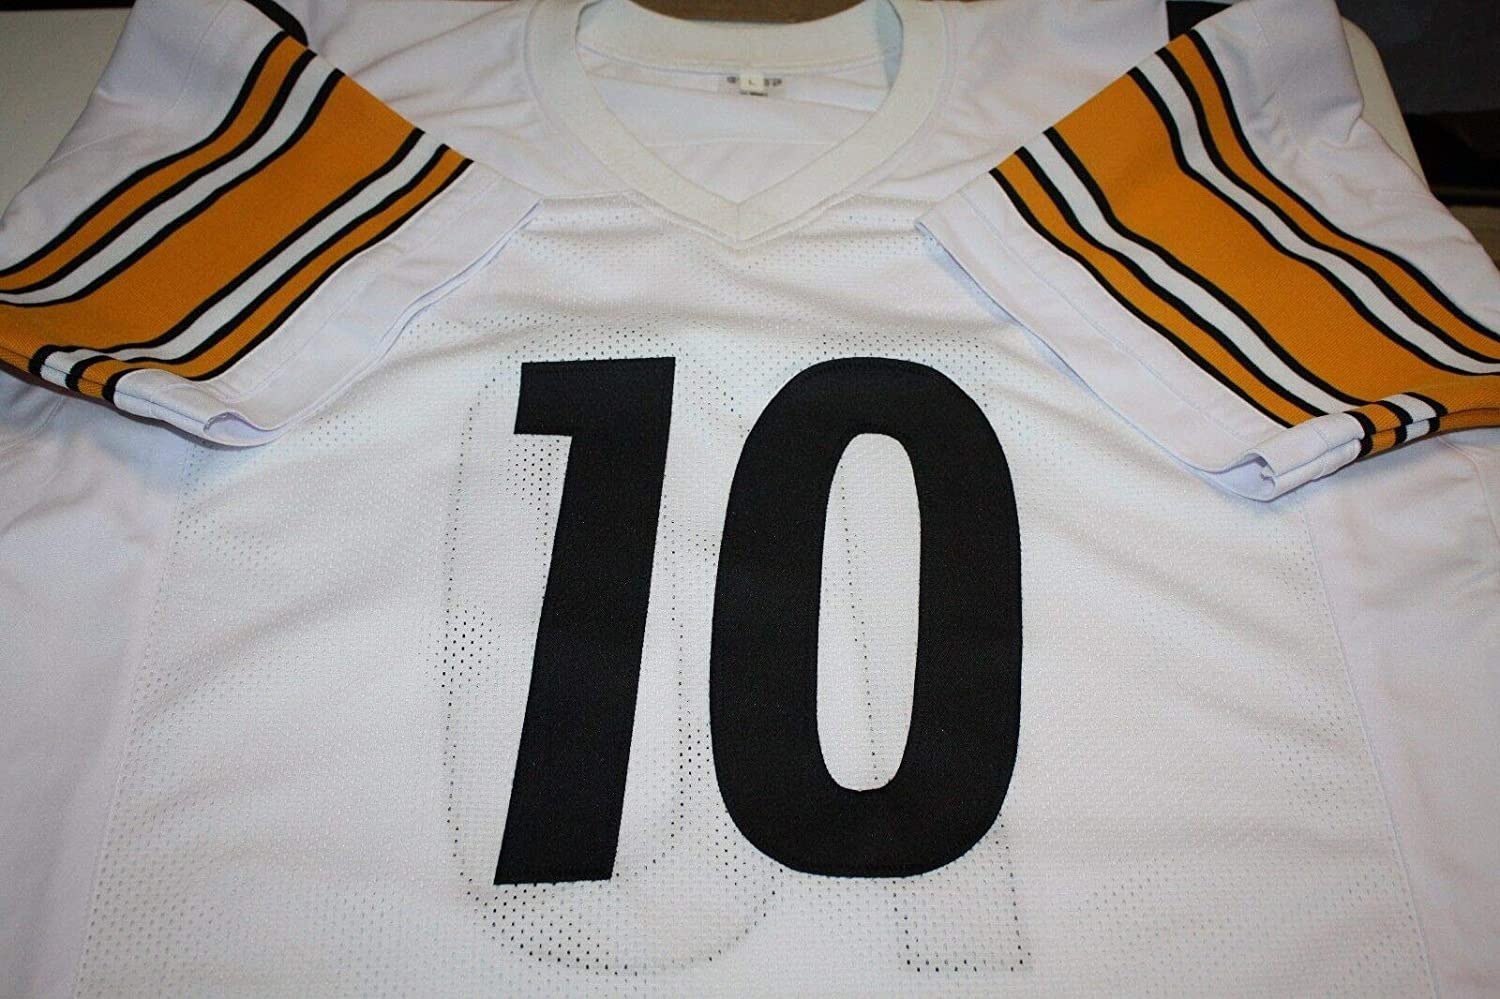 ba178814e Pittsburgh Steelers Kordell Stewart  10 Autographed Signed Away Jersey  Slash Memorabilia - JSA Authentic at Amazon s Sports Collectibles Store